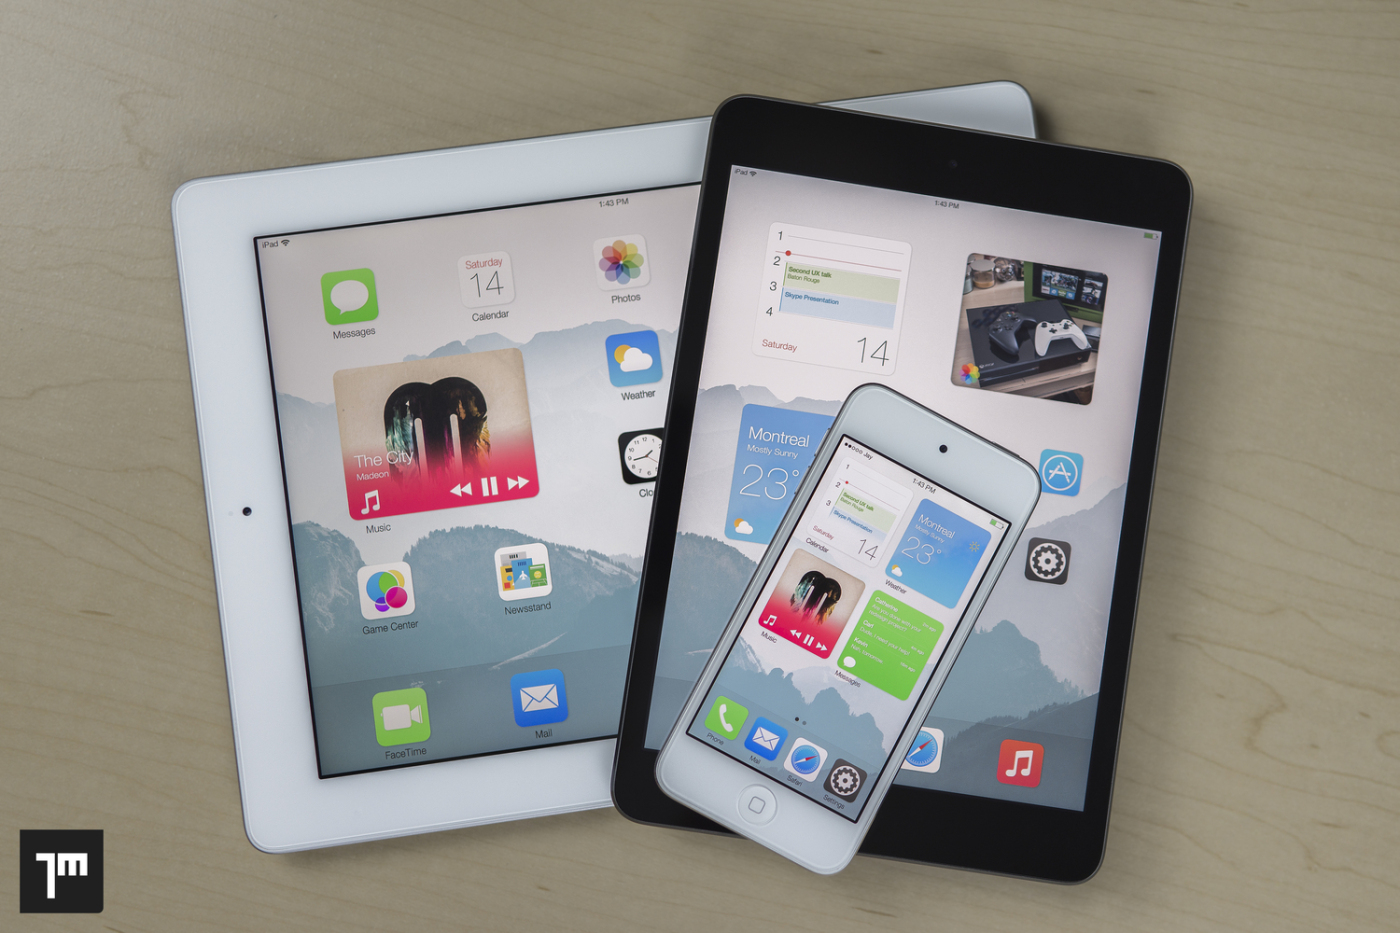 A Brilliant 'iOS Blocks' Concept Imagines Widgets in iOS 8